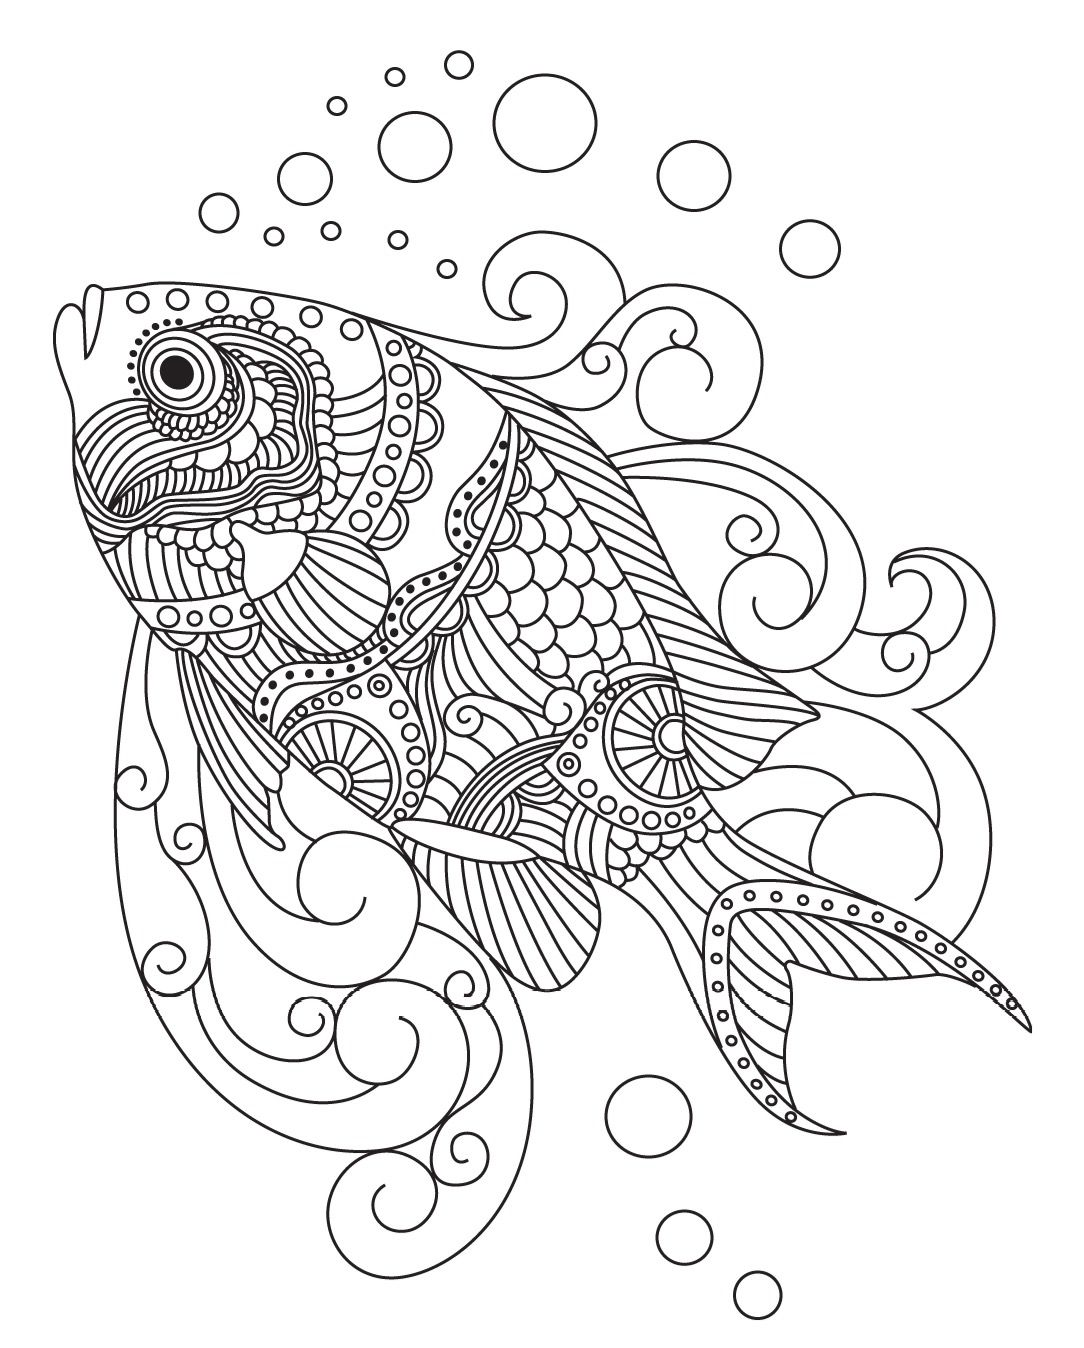 Relicaaa I Will Send You 200 Complex Mandala Coloring Pages For 15 On Fiverr Com Mandala Coloring Pages Mandala Coloring Mandala Coloring Books [ 1348 x 1084 Pixel ]